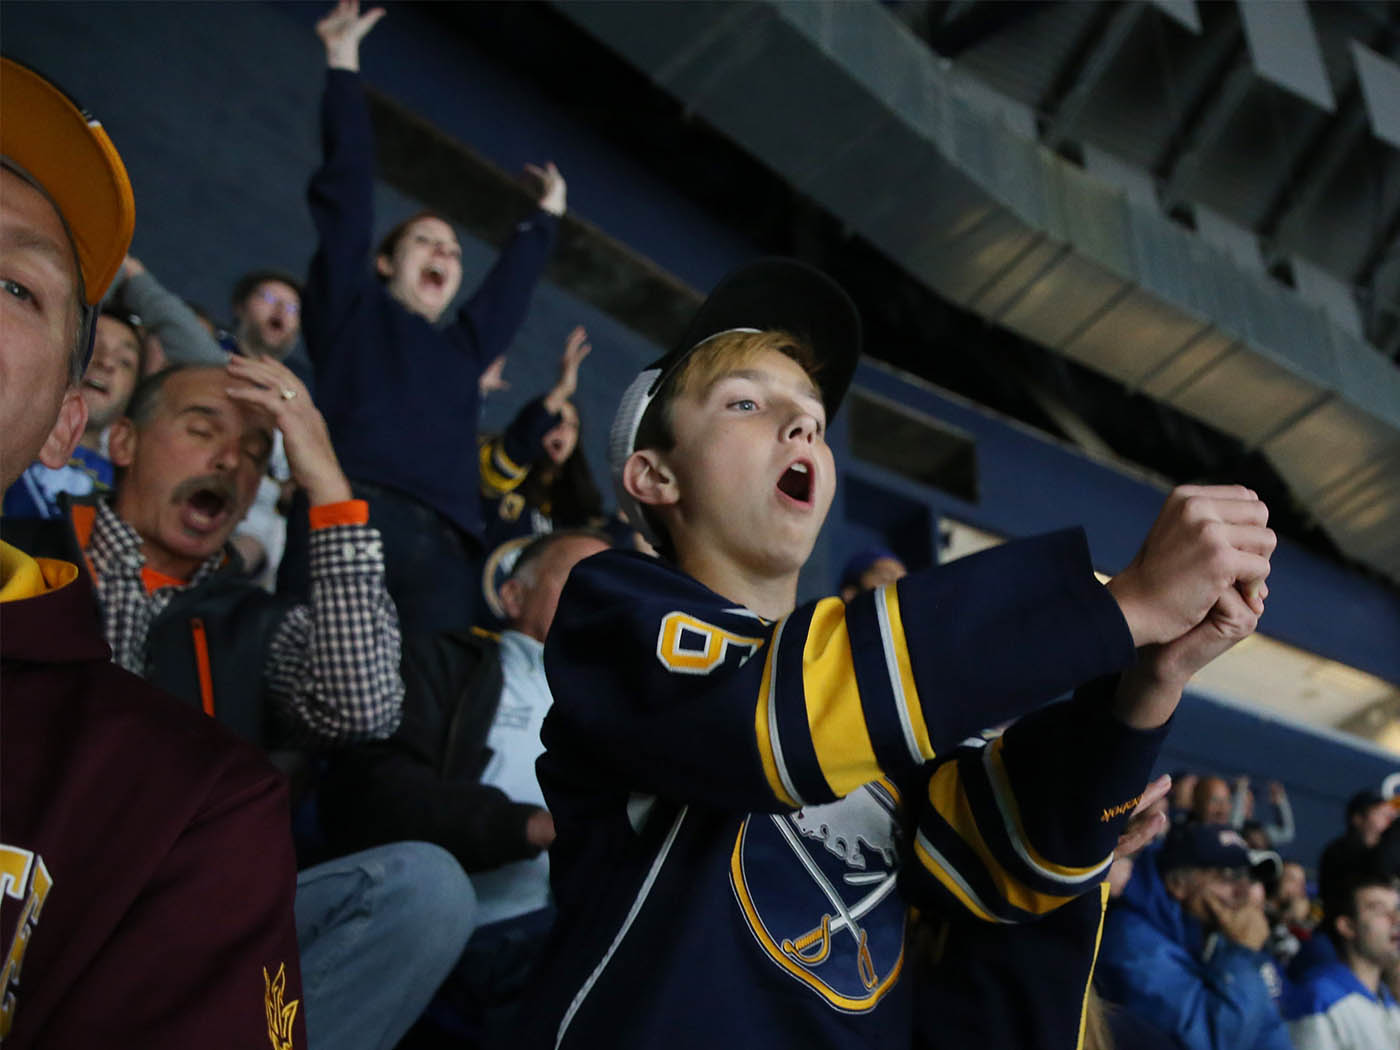 If you're a Sabres fan or a Maple Leafs fan, you don't want to miss the rivalry game. With Toronto fans flooding KeyBank Center, it's hard to tell who's the home team, but it makes for an interesting night of hockey, Thursday, Nov. 3, 2016. So close! Sabres fan Jameson Brunn, 13, thought he was going to celebrate a goal, but no such luck. (Sharon Cantillon/Buffalo News)